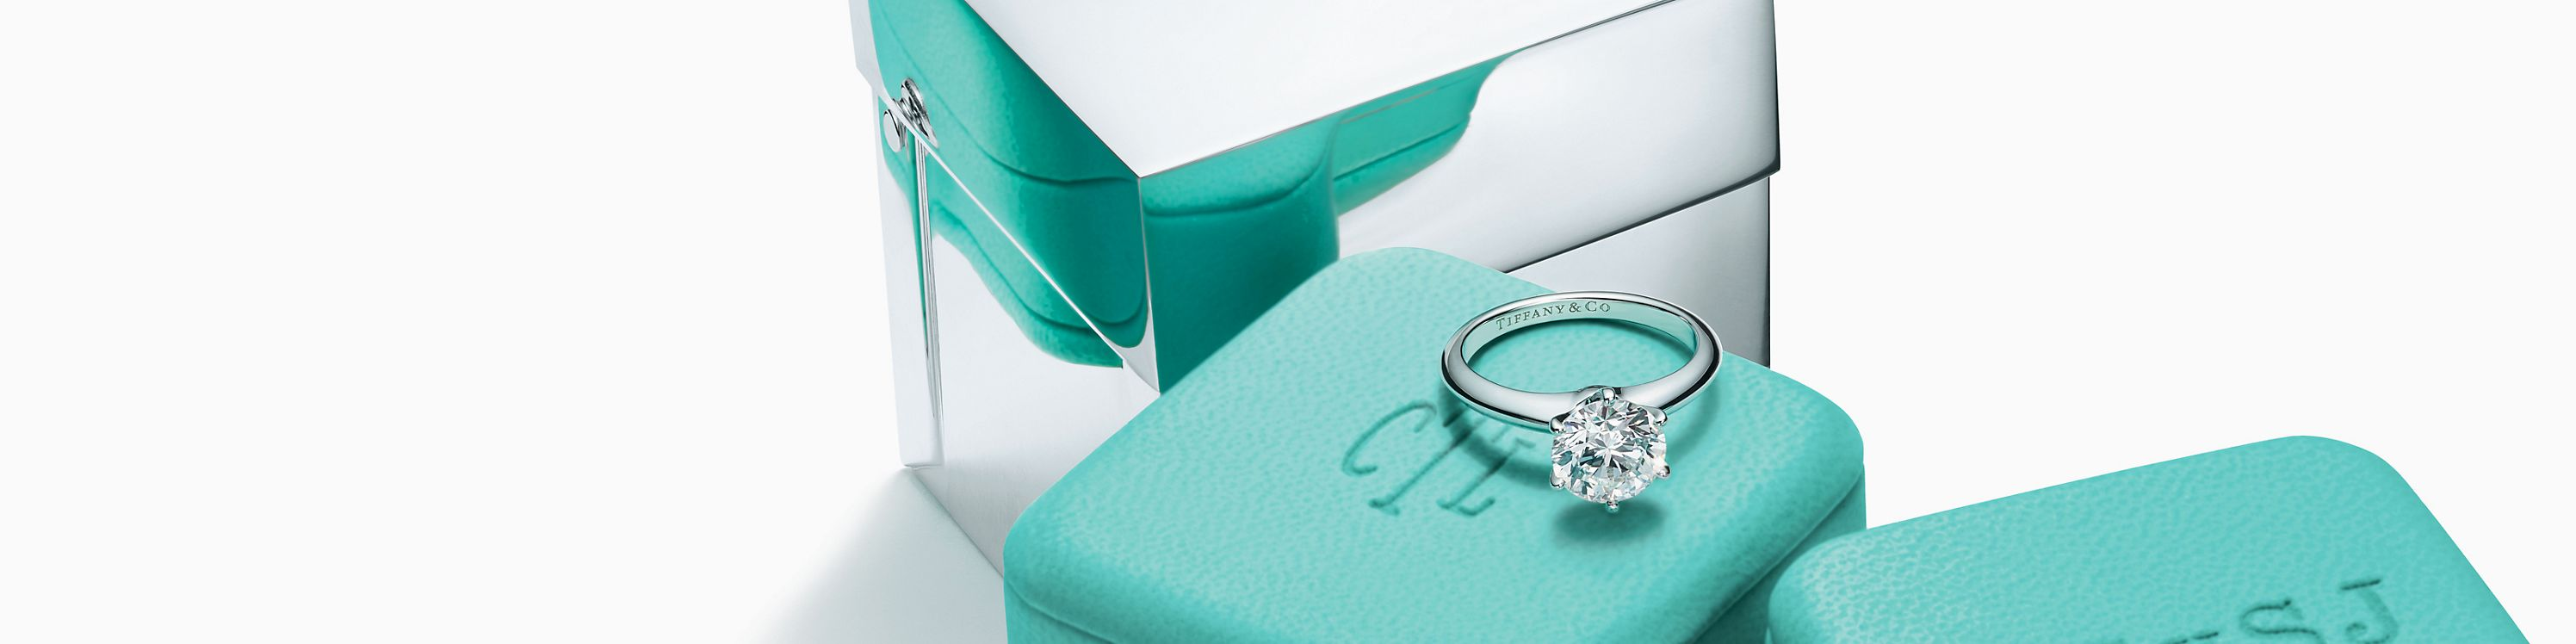 Unique Engagement Ring Styles Tiffany Co